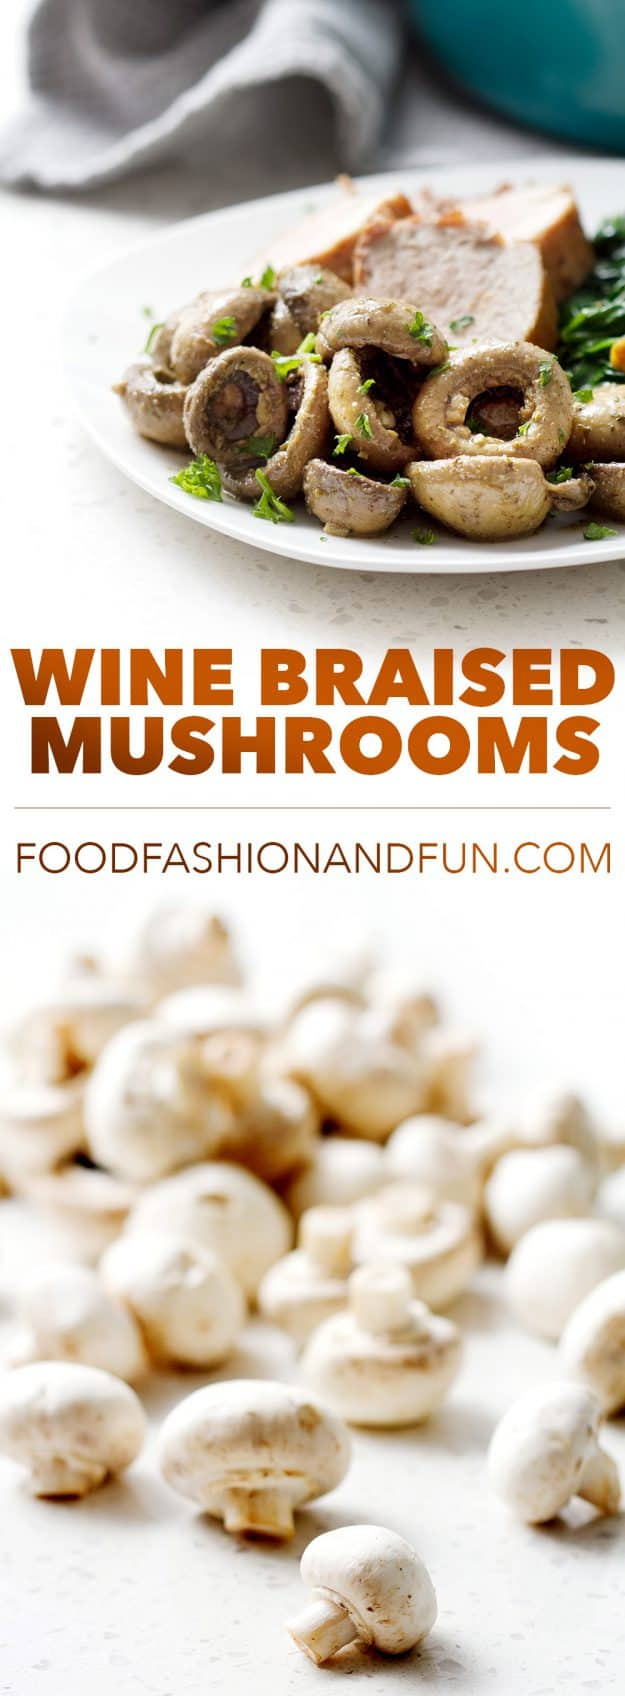 Button mushrooms that are braised in wine and Italian Seasonings. It's super simple, delicious and perfect for those following a vegan, autoimmune protocol diet or people that just want a really great side.